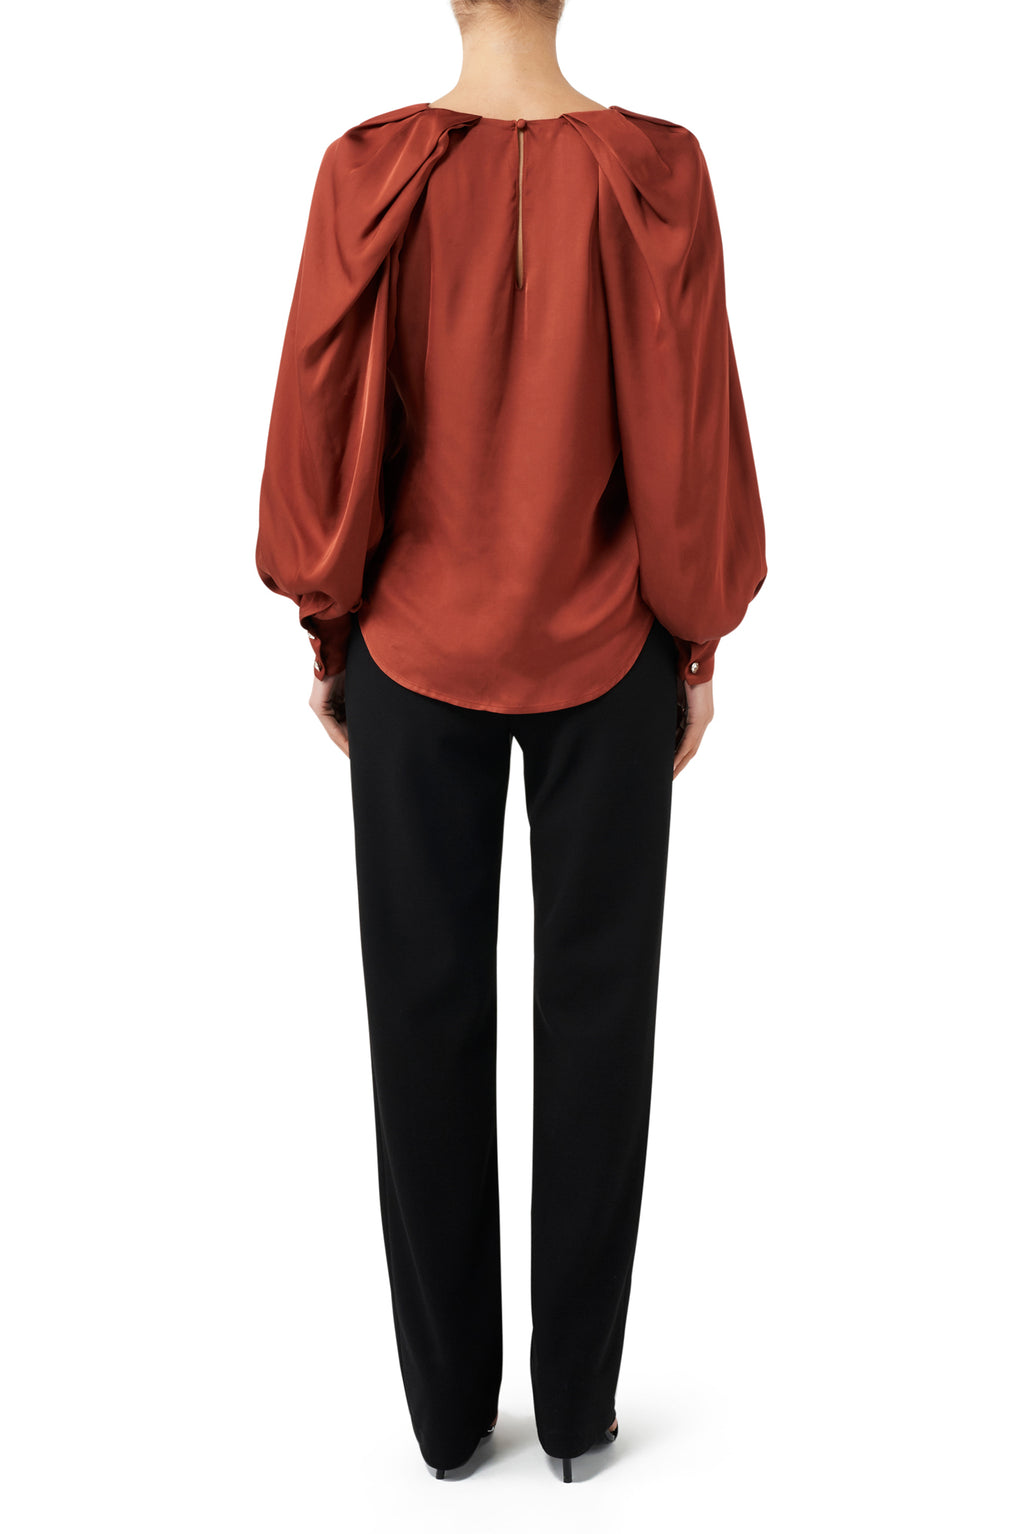 Ruby Blouse - Cinnamon